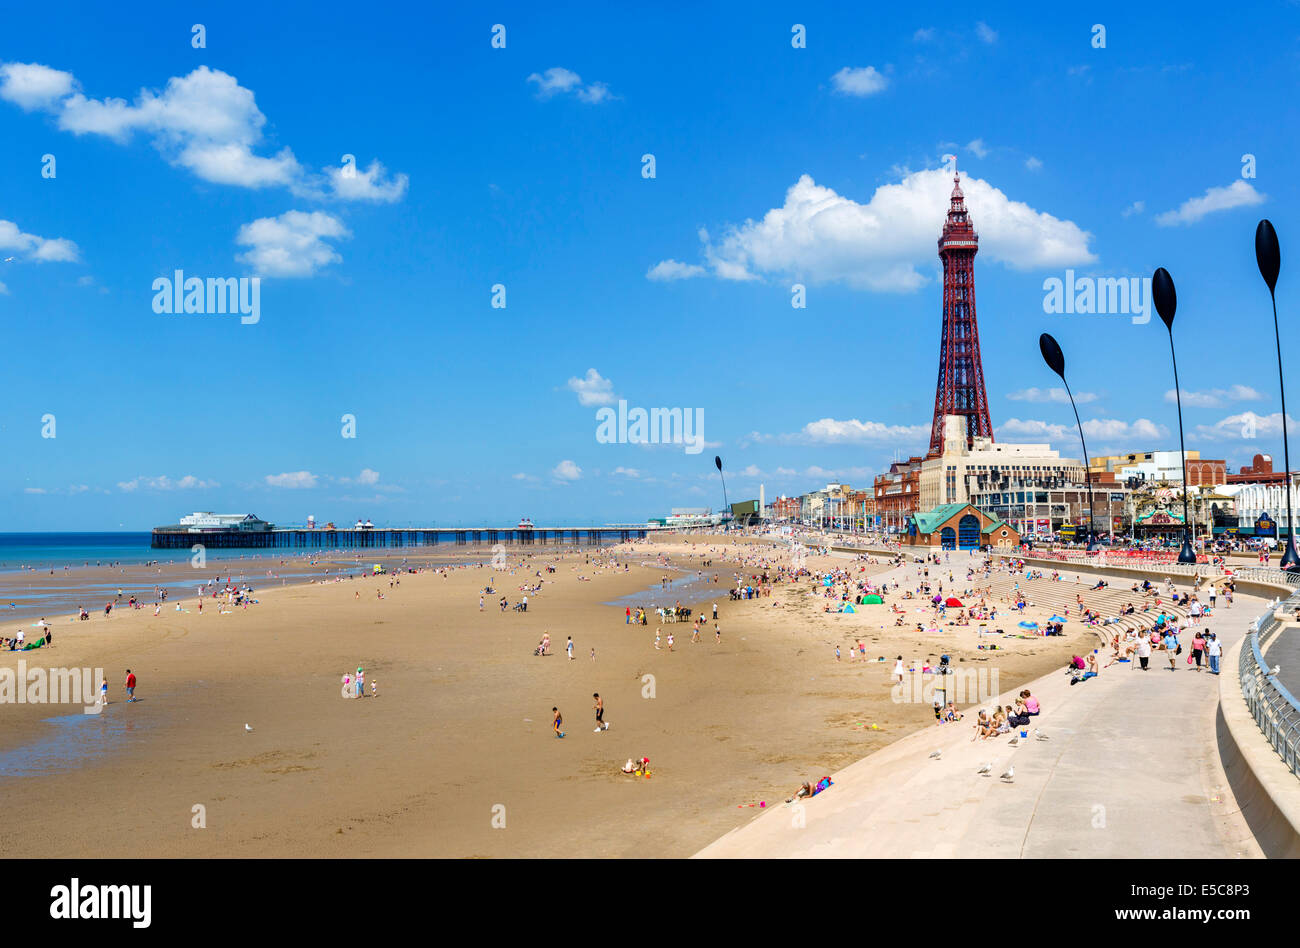 View from Central Pier towards North Pier and Blackpool Tower, The Golden Mile, Blackpool, Lancashire, UK - Stock Image